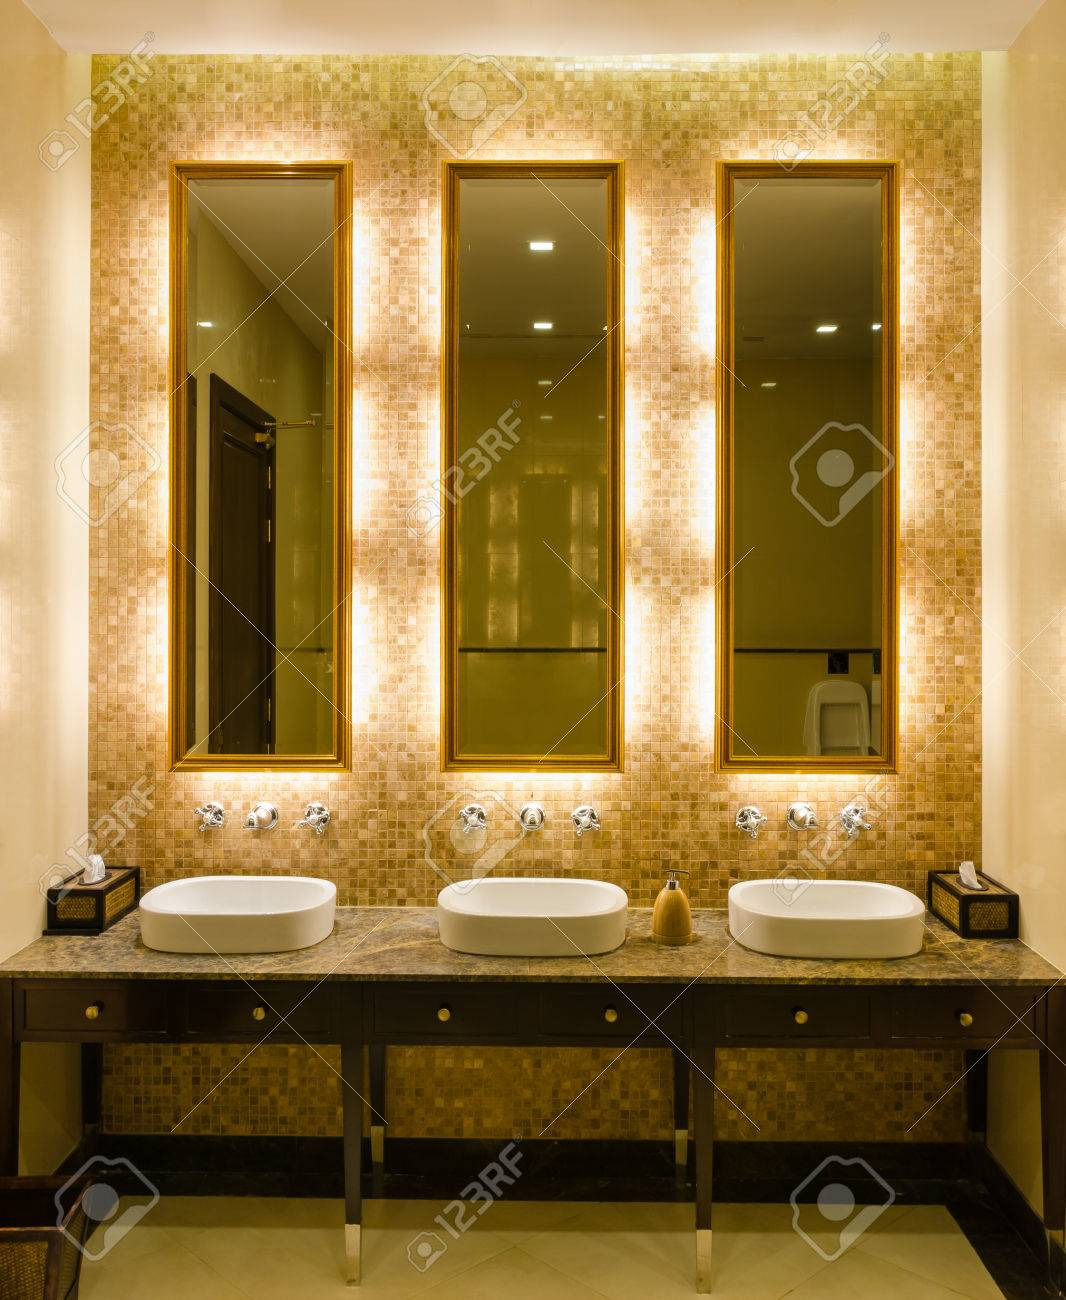 Decorative Bathroom Pictures New View Modern Style Interior Design Of Decorative Gold Mirror Frame